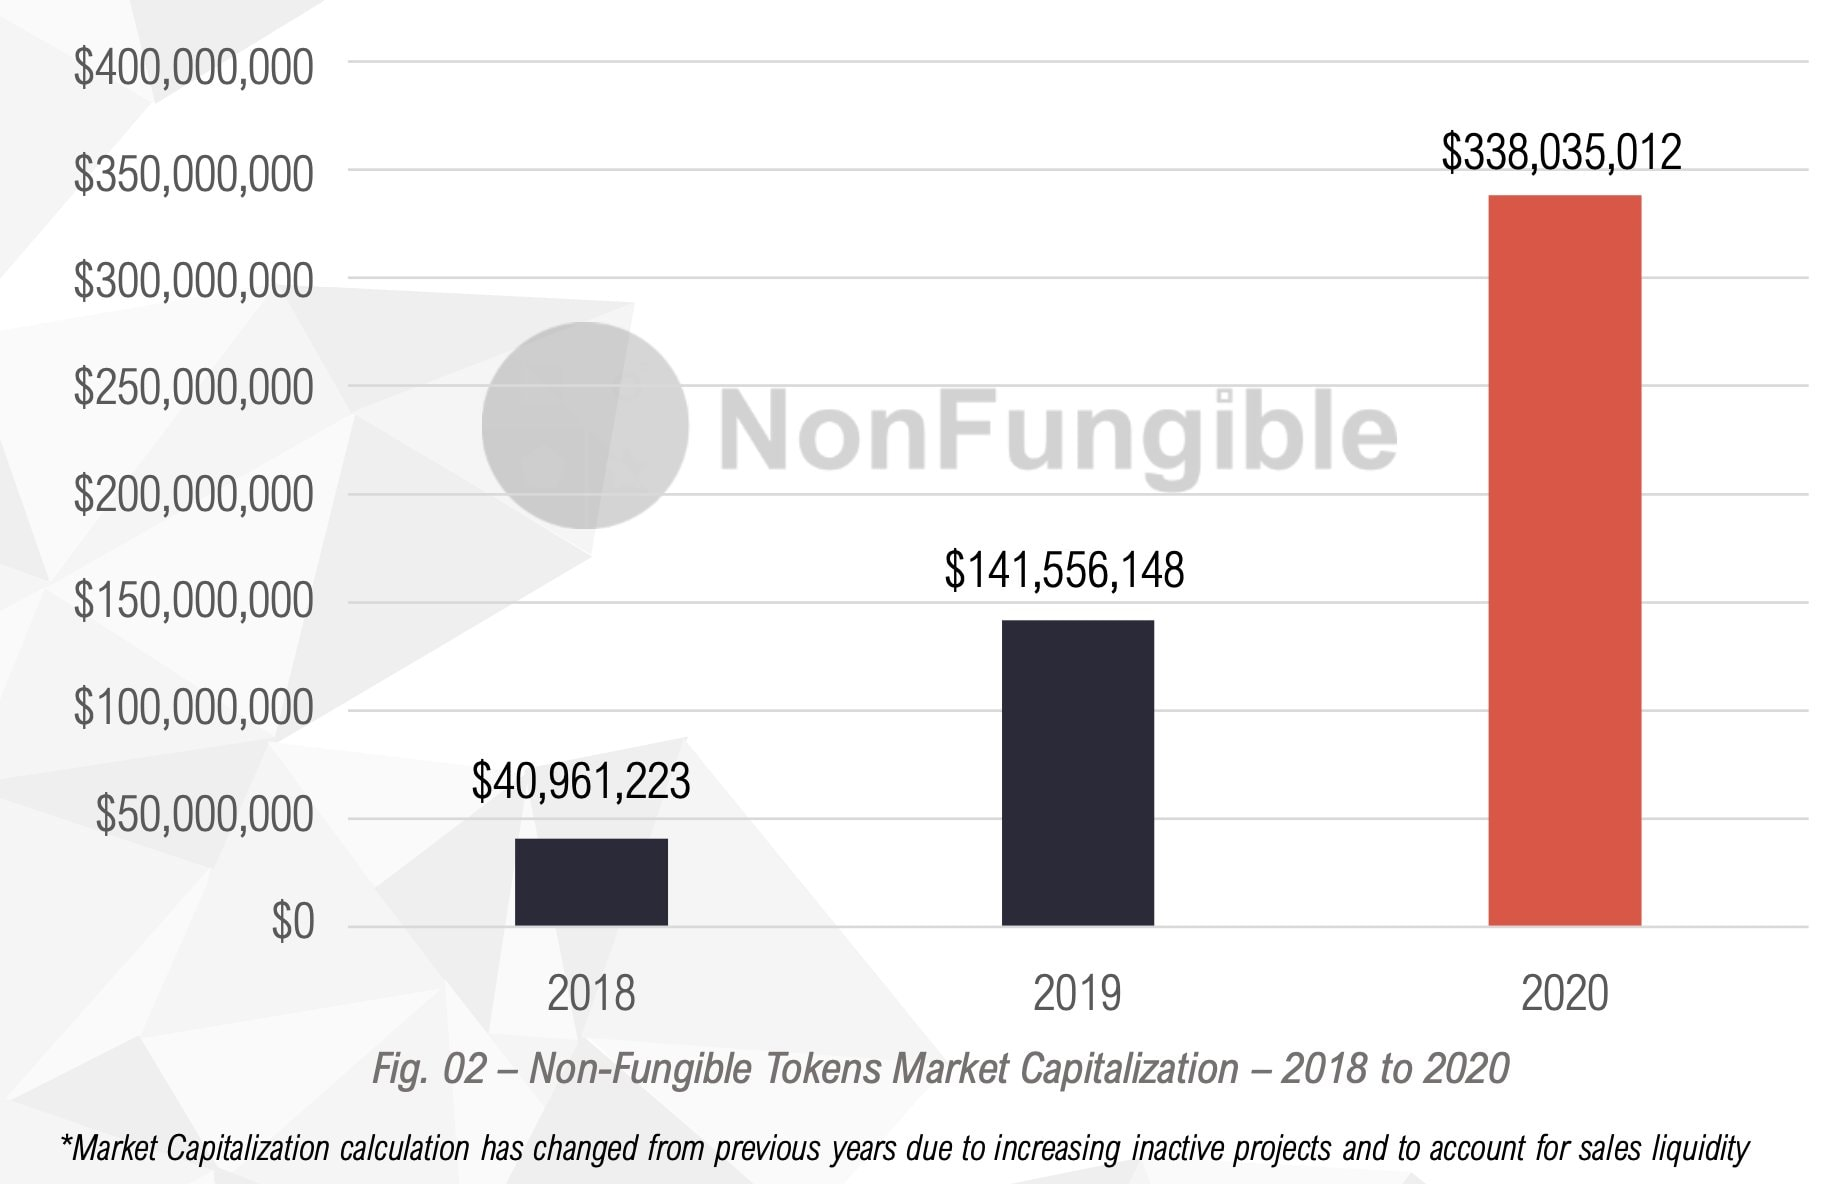 Non-fungible Token Growth